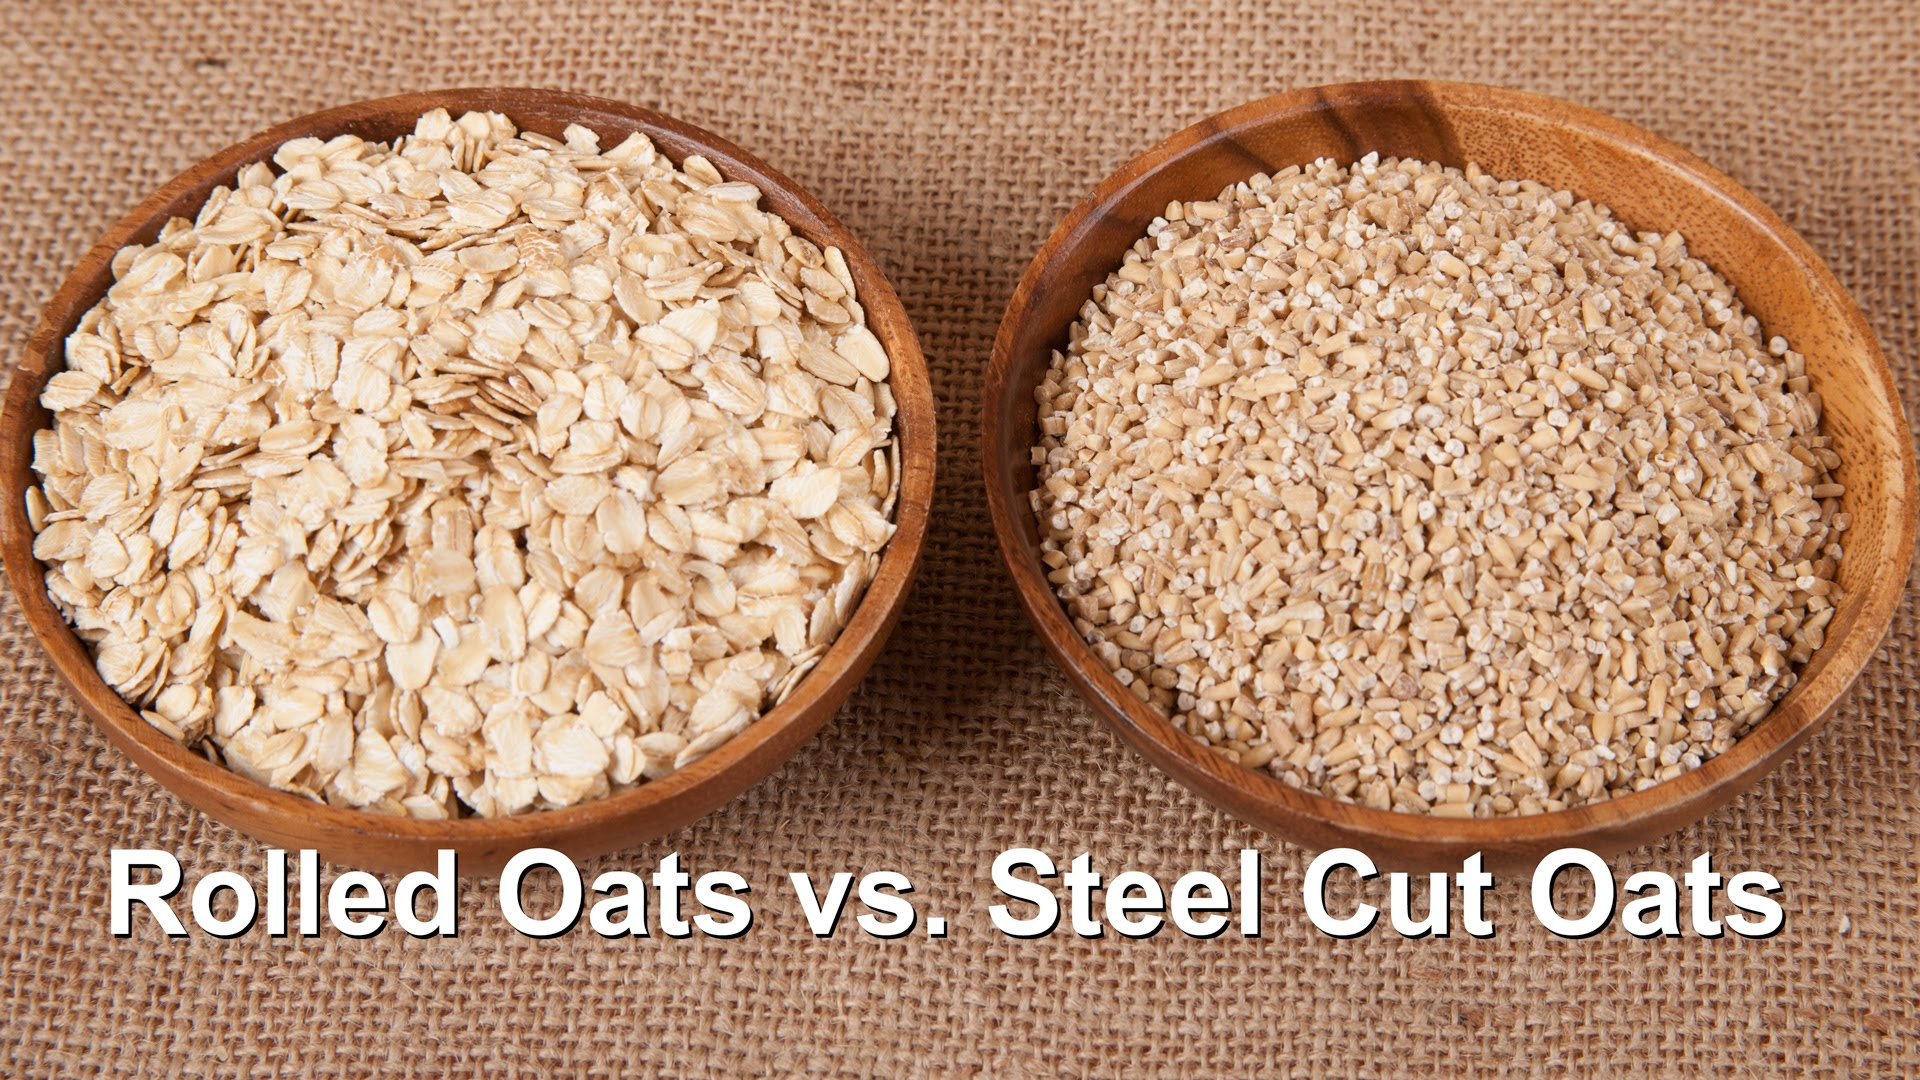 rolled-oats-vs-steel-cut-oats-vs-instant-oats.jpg